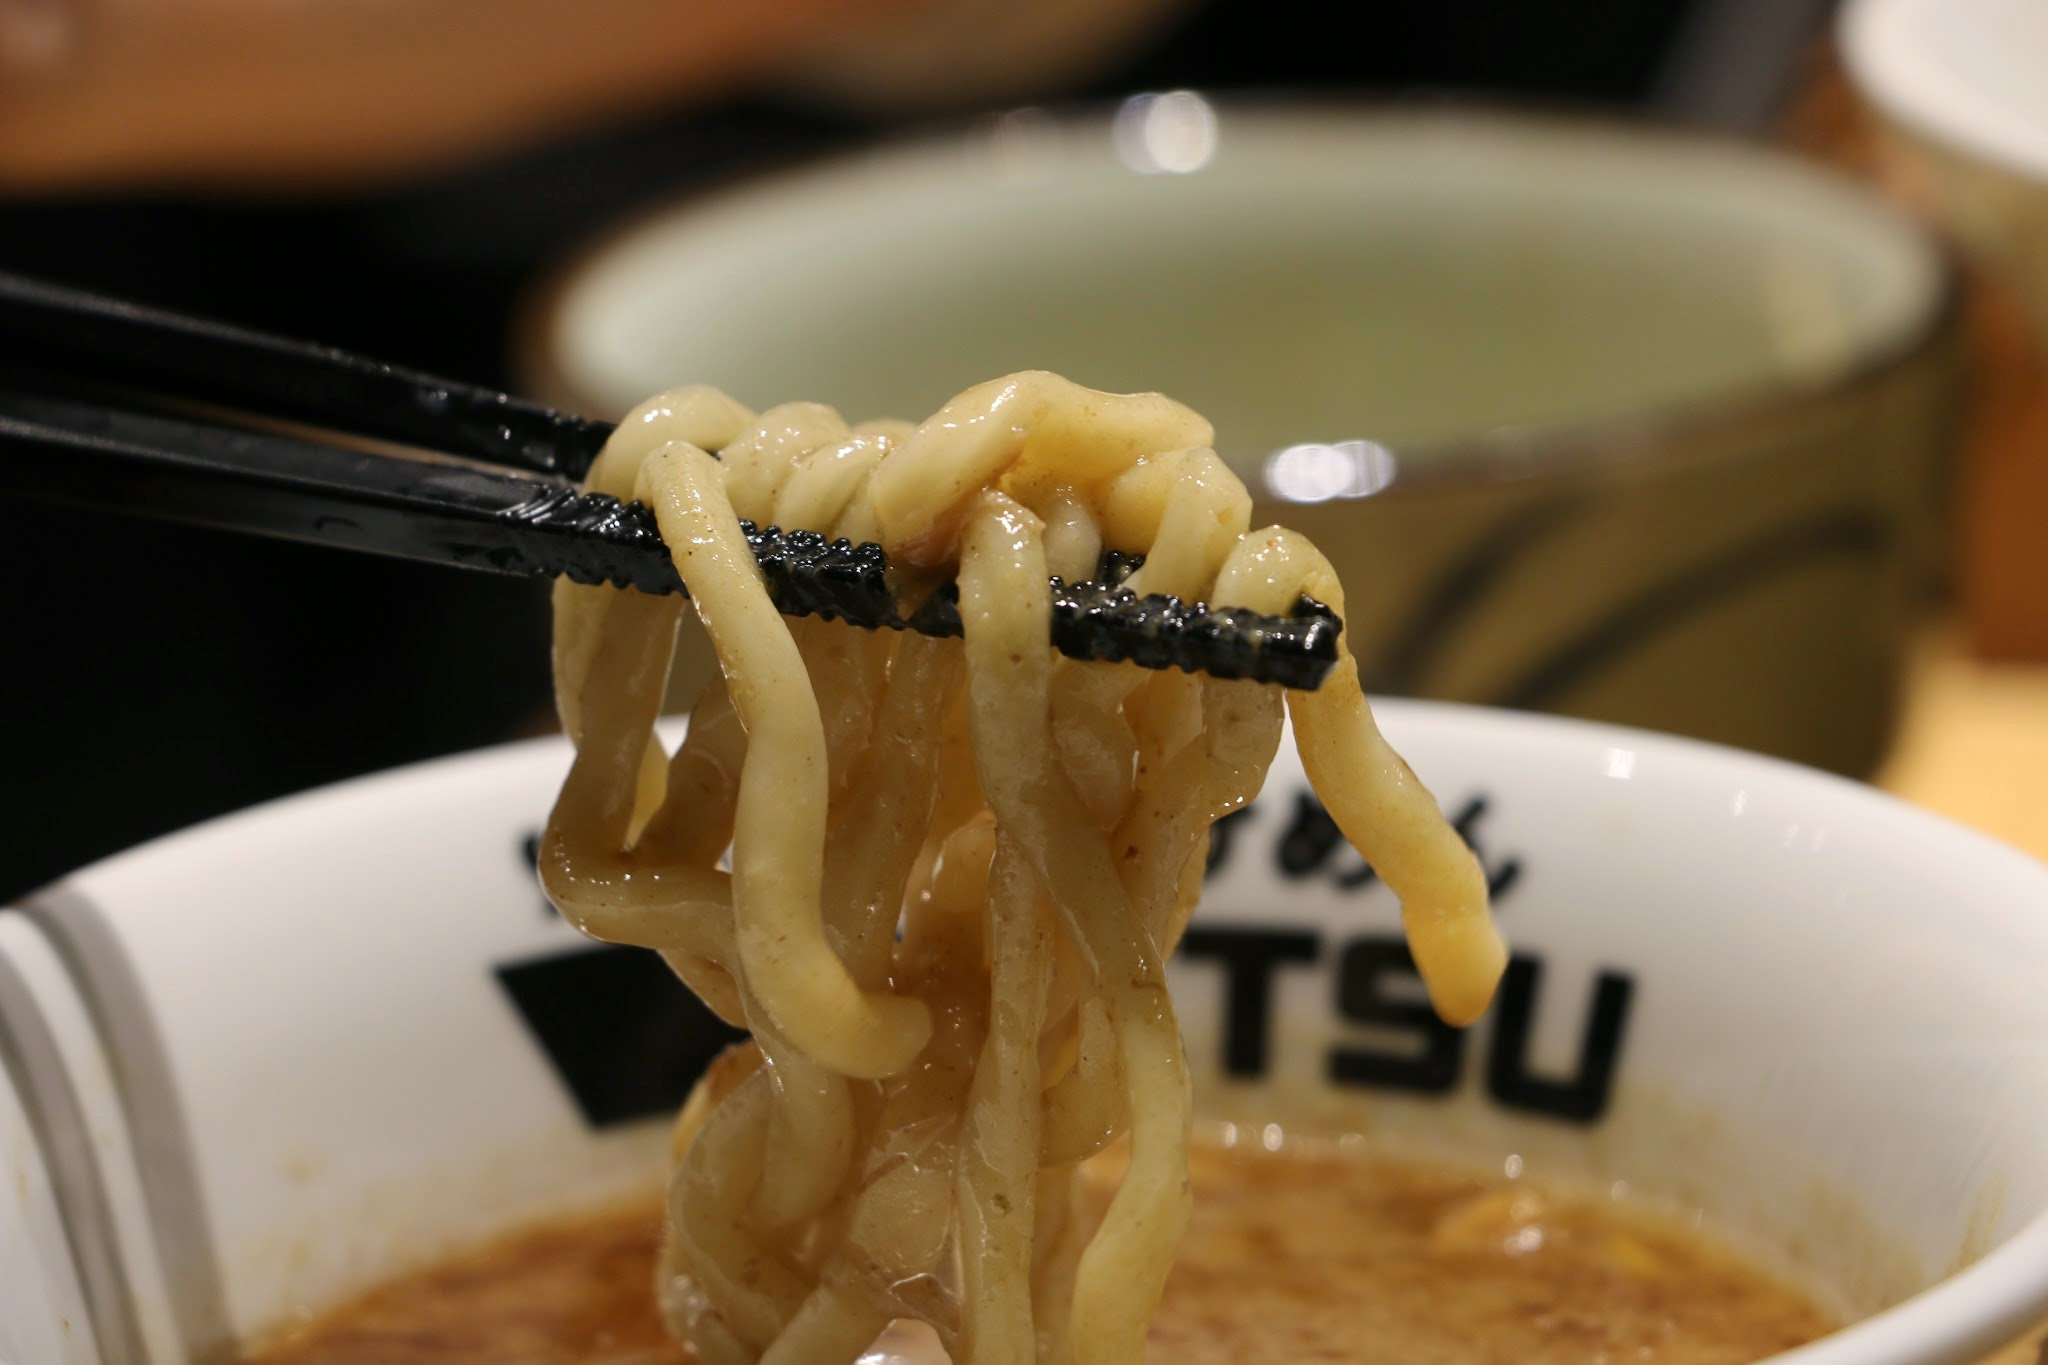 TETSU沾麵哲, TETSU, 沾麵, ramen, tsukemen, pork, bbq pork, broth